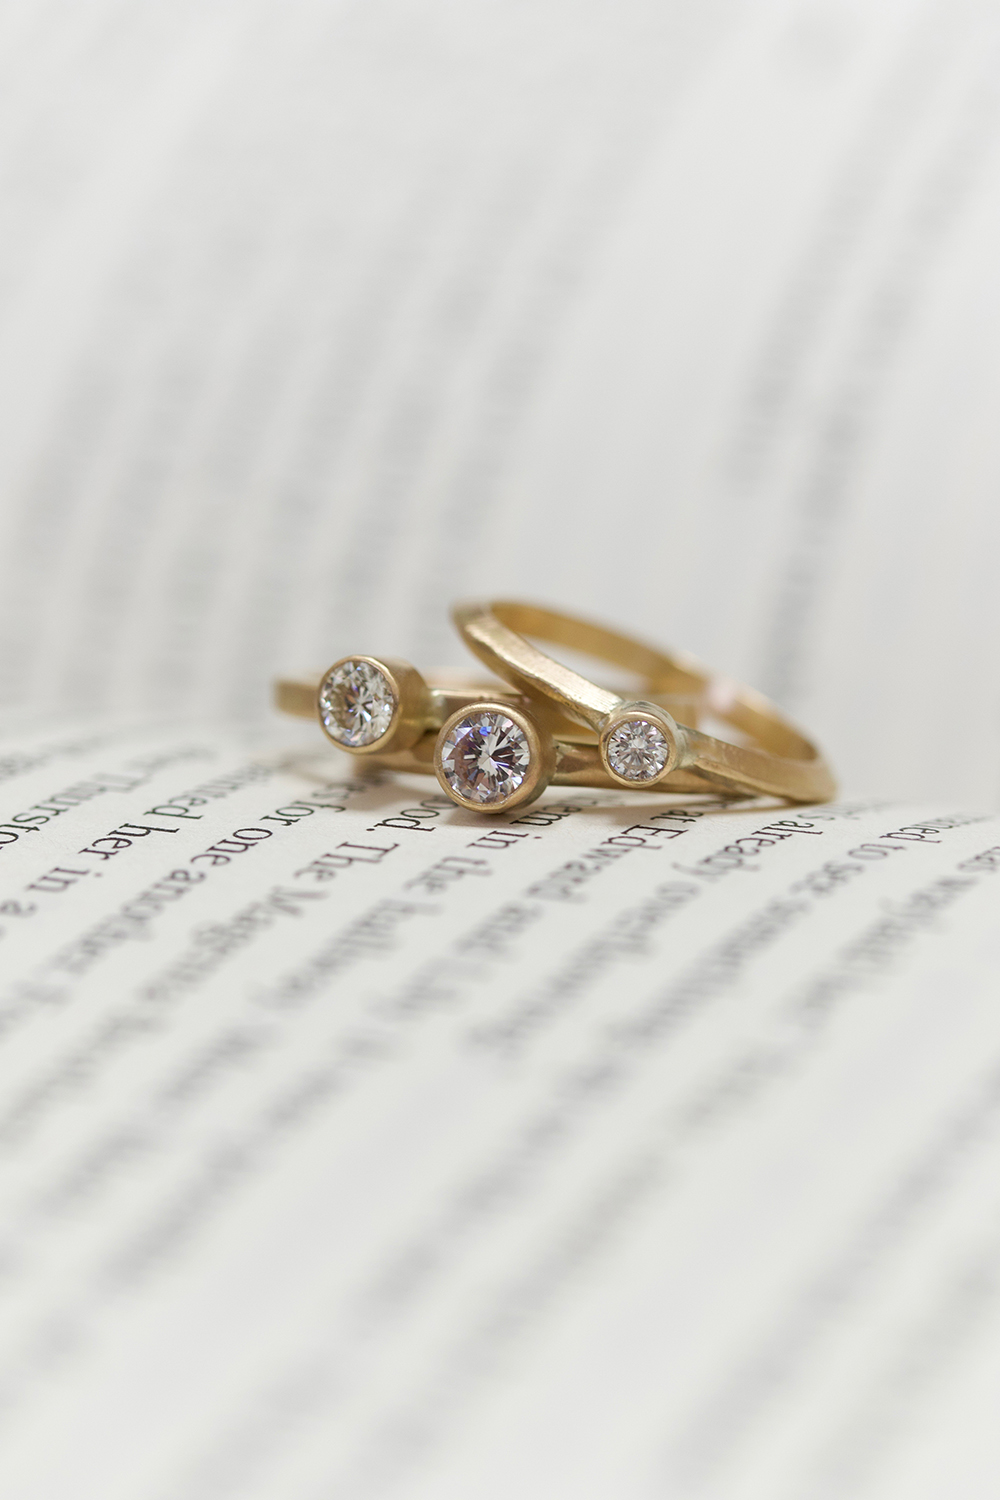 ridge mitla and breakwater diamond rings on book small.jpg